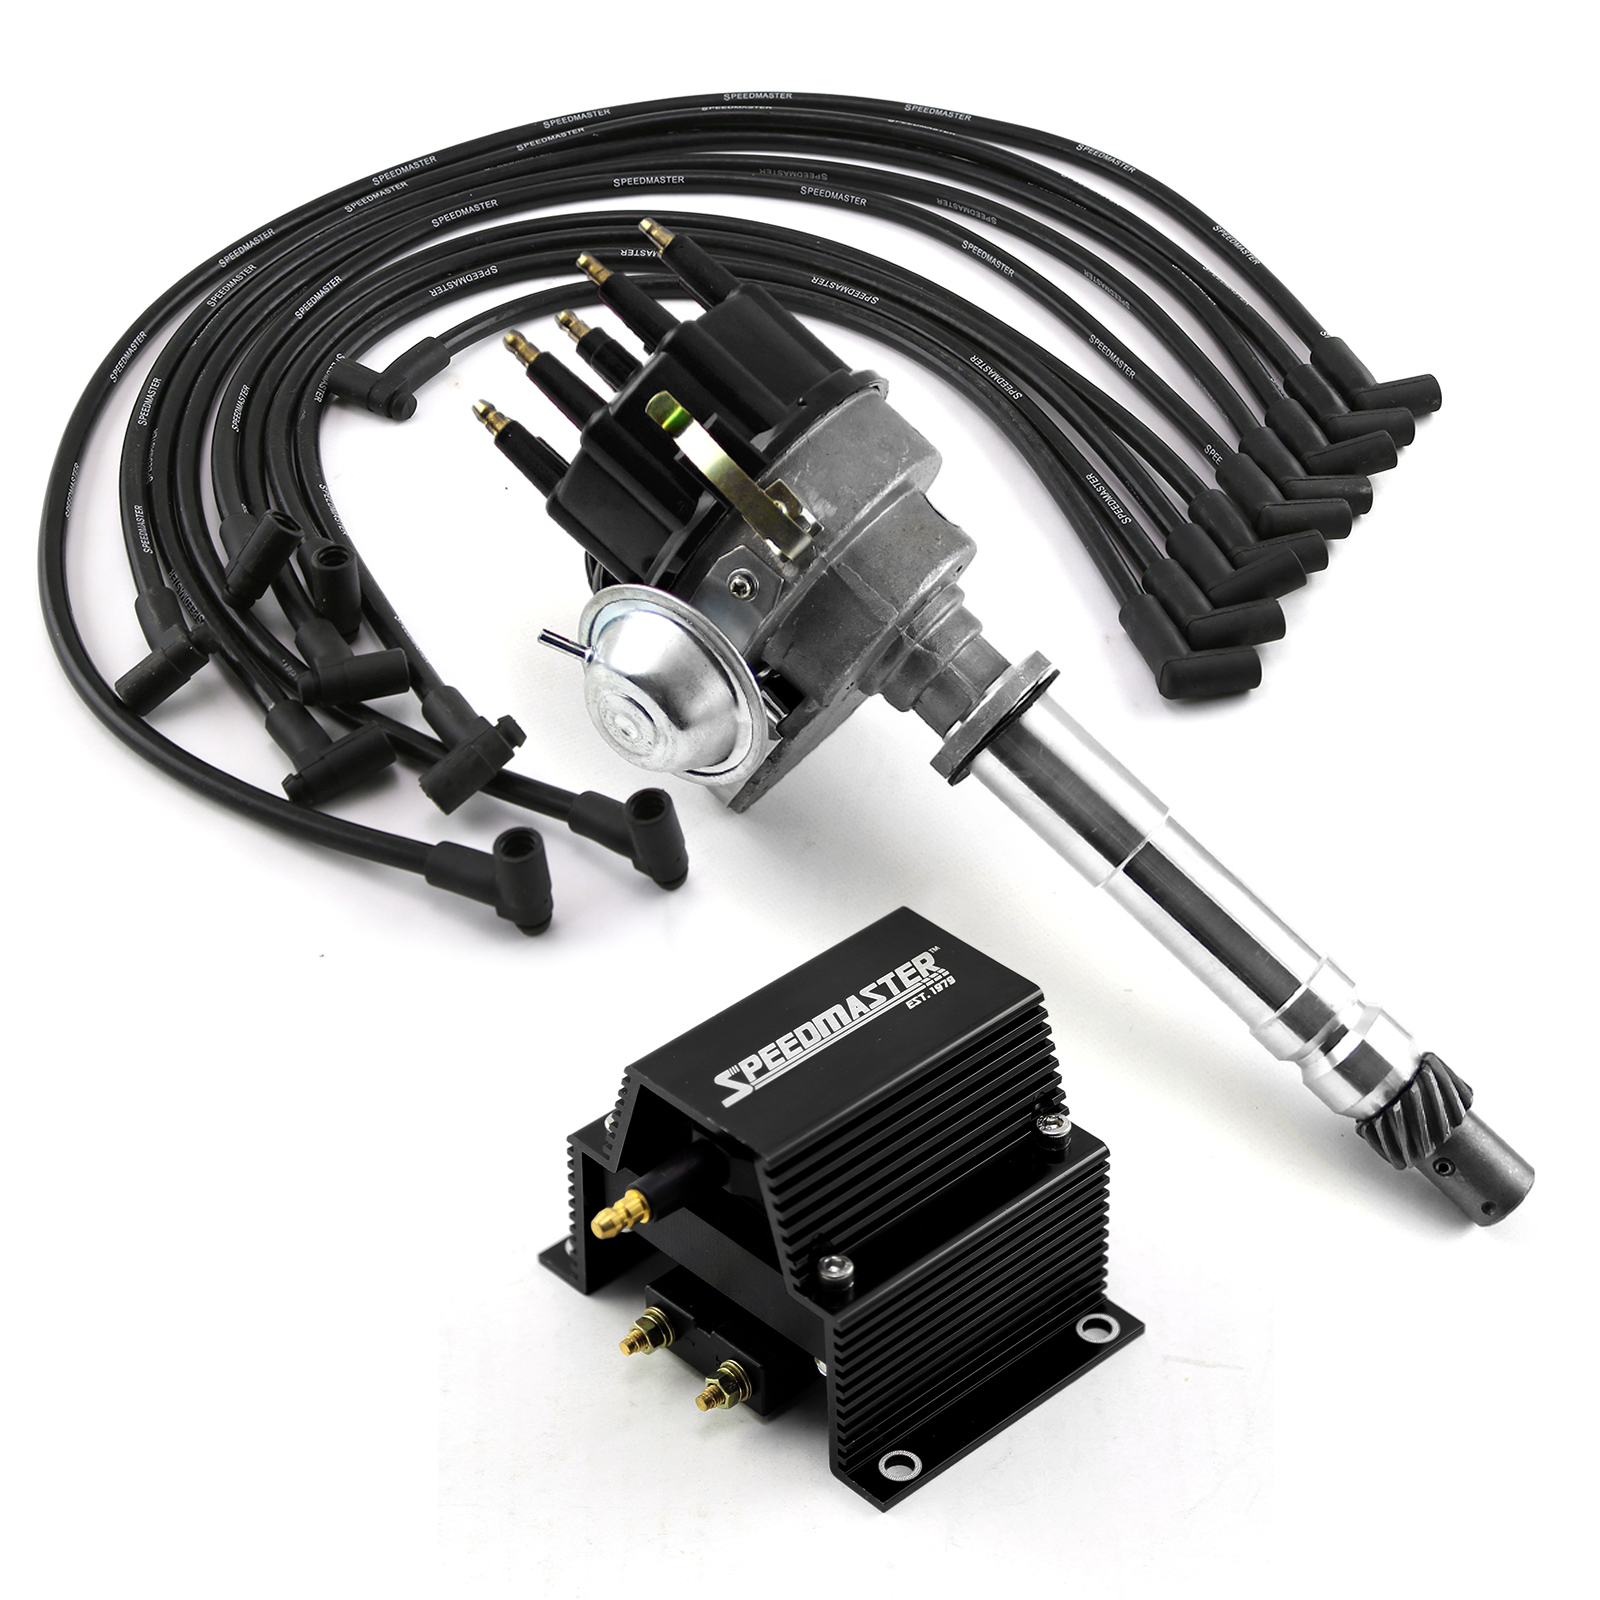 Chevy SBC 350 BBC 454 Ready-to-run Black Ignition Distributor Combo